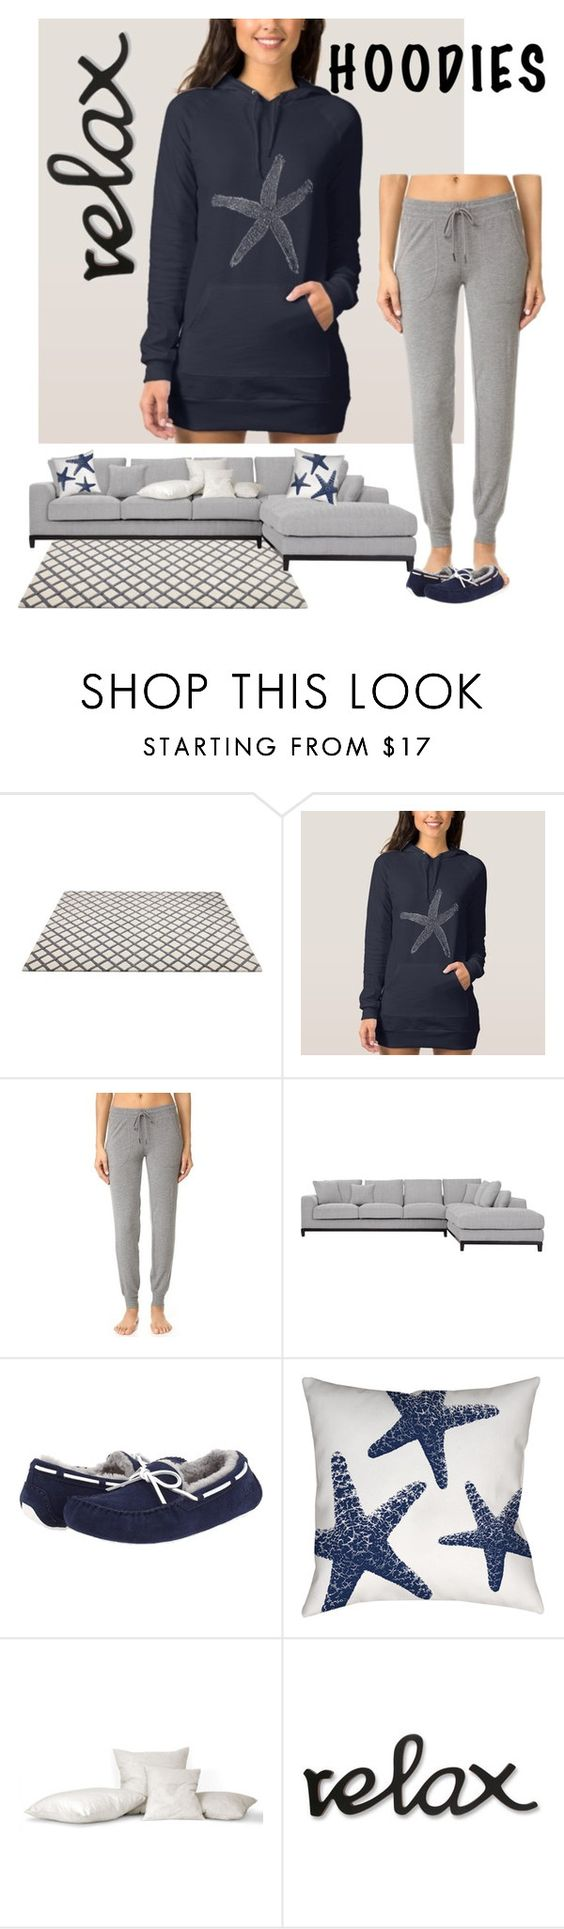 """Relax - Seaside Hoodie"" by mermadem7 ❤ liked on Polyvore featuring P.J. Salvage, UGG and Thumbprintz"